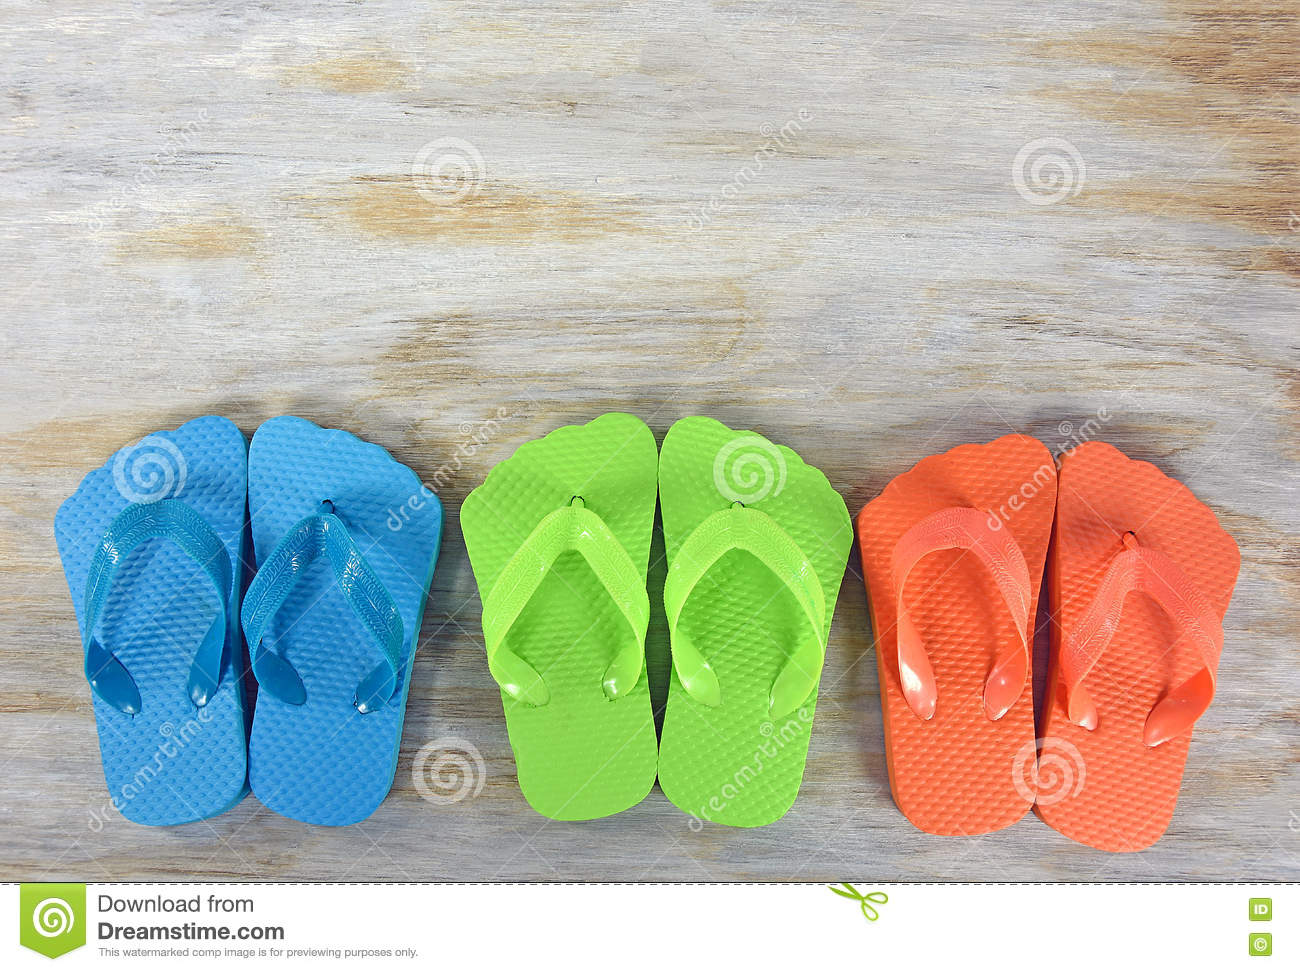 Row of colorful flip-flops on wood